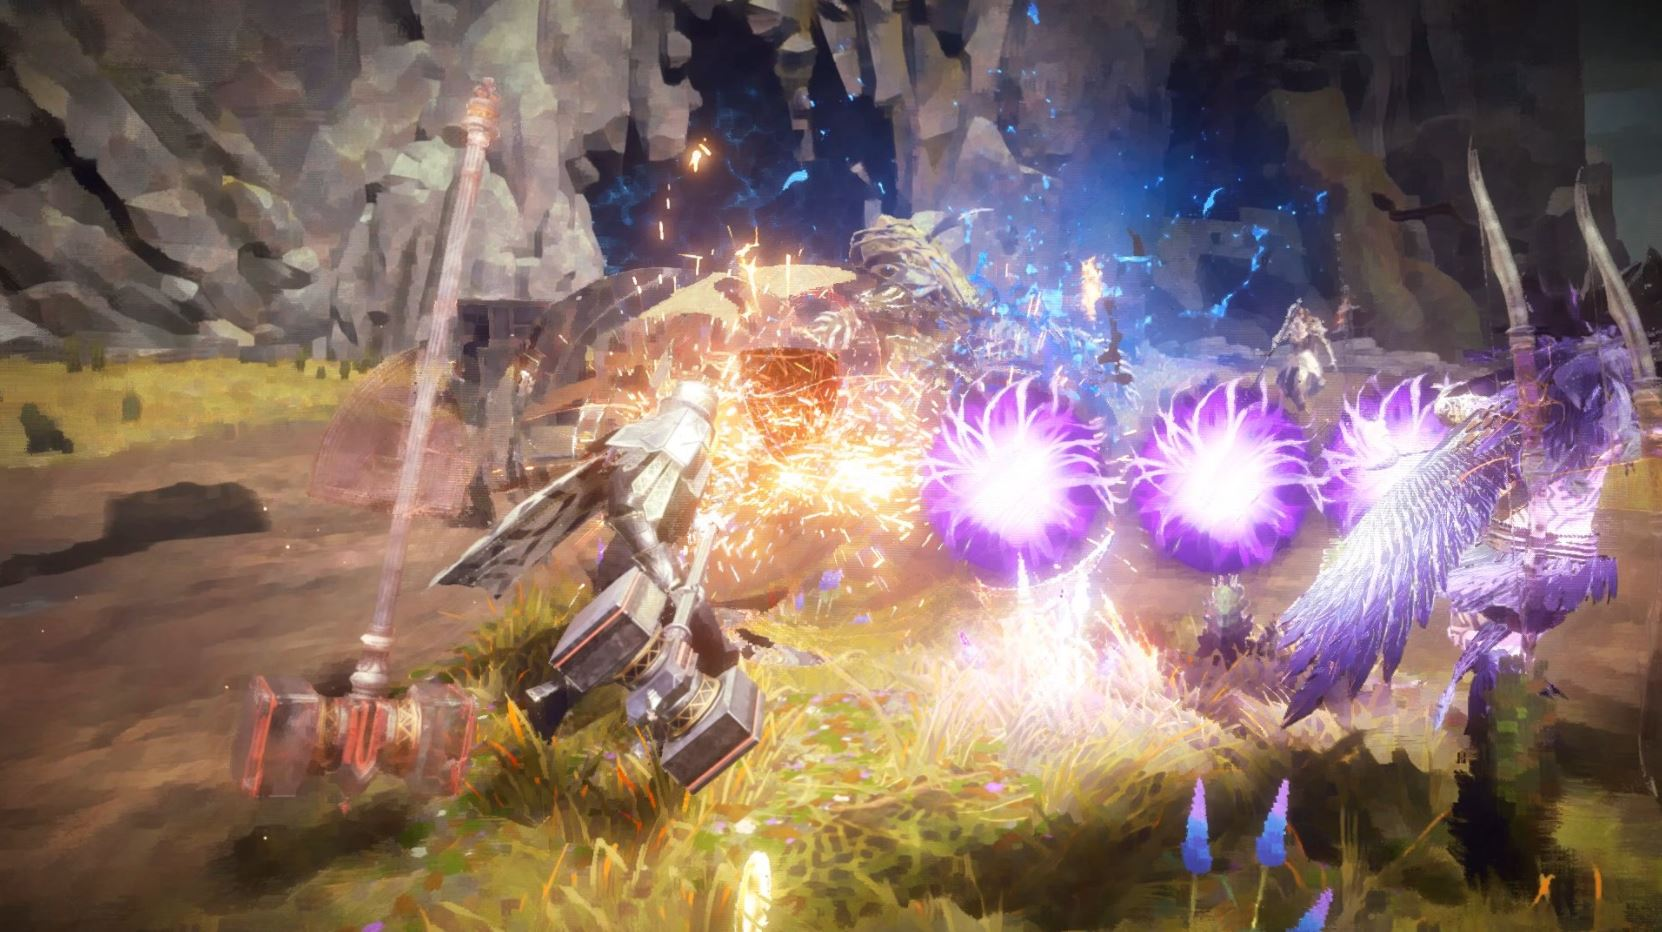 Babylon's Fall Direct Feed Screenshots Don't Look A Whole Lot Better Than The Gameplay